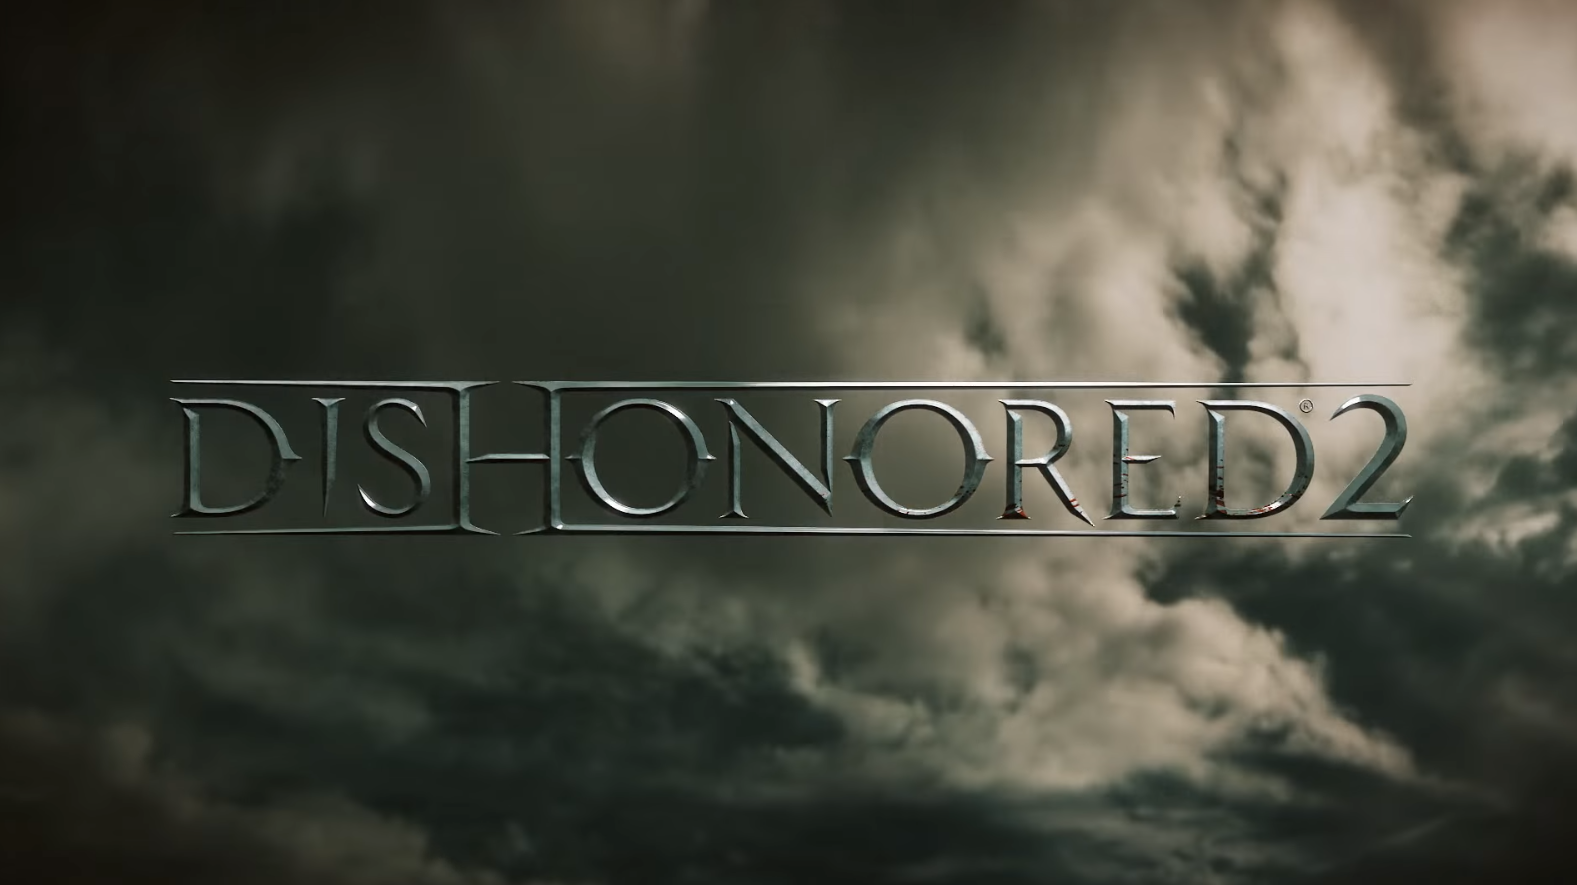 Dishonored 2 Releasing On November 11th, 2016